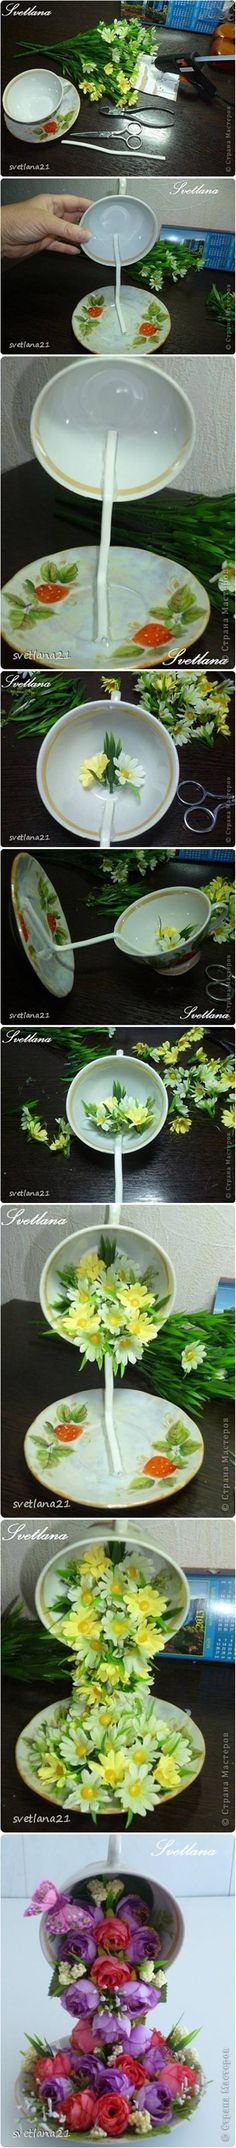 How to Make a Topiary Flower Flying Cup Decor #craft #decor #floating_cup